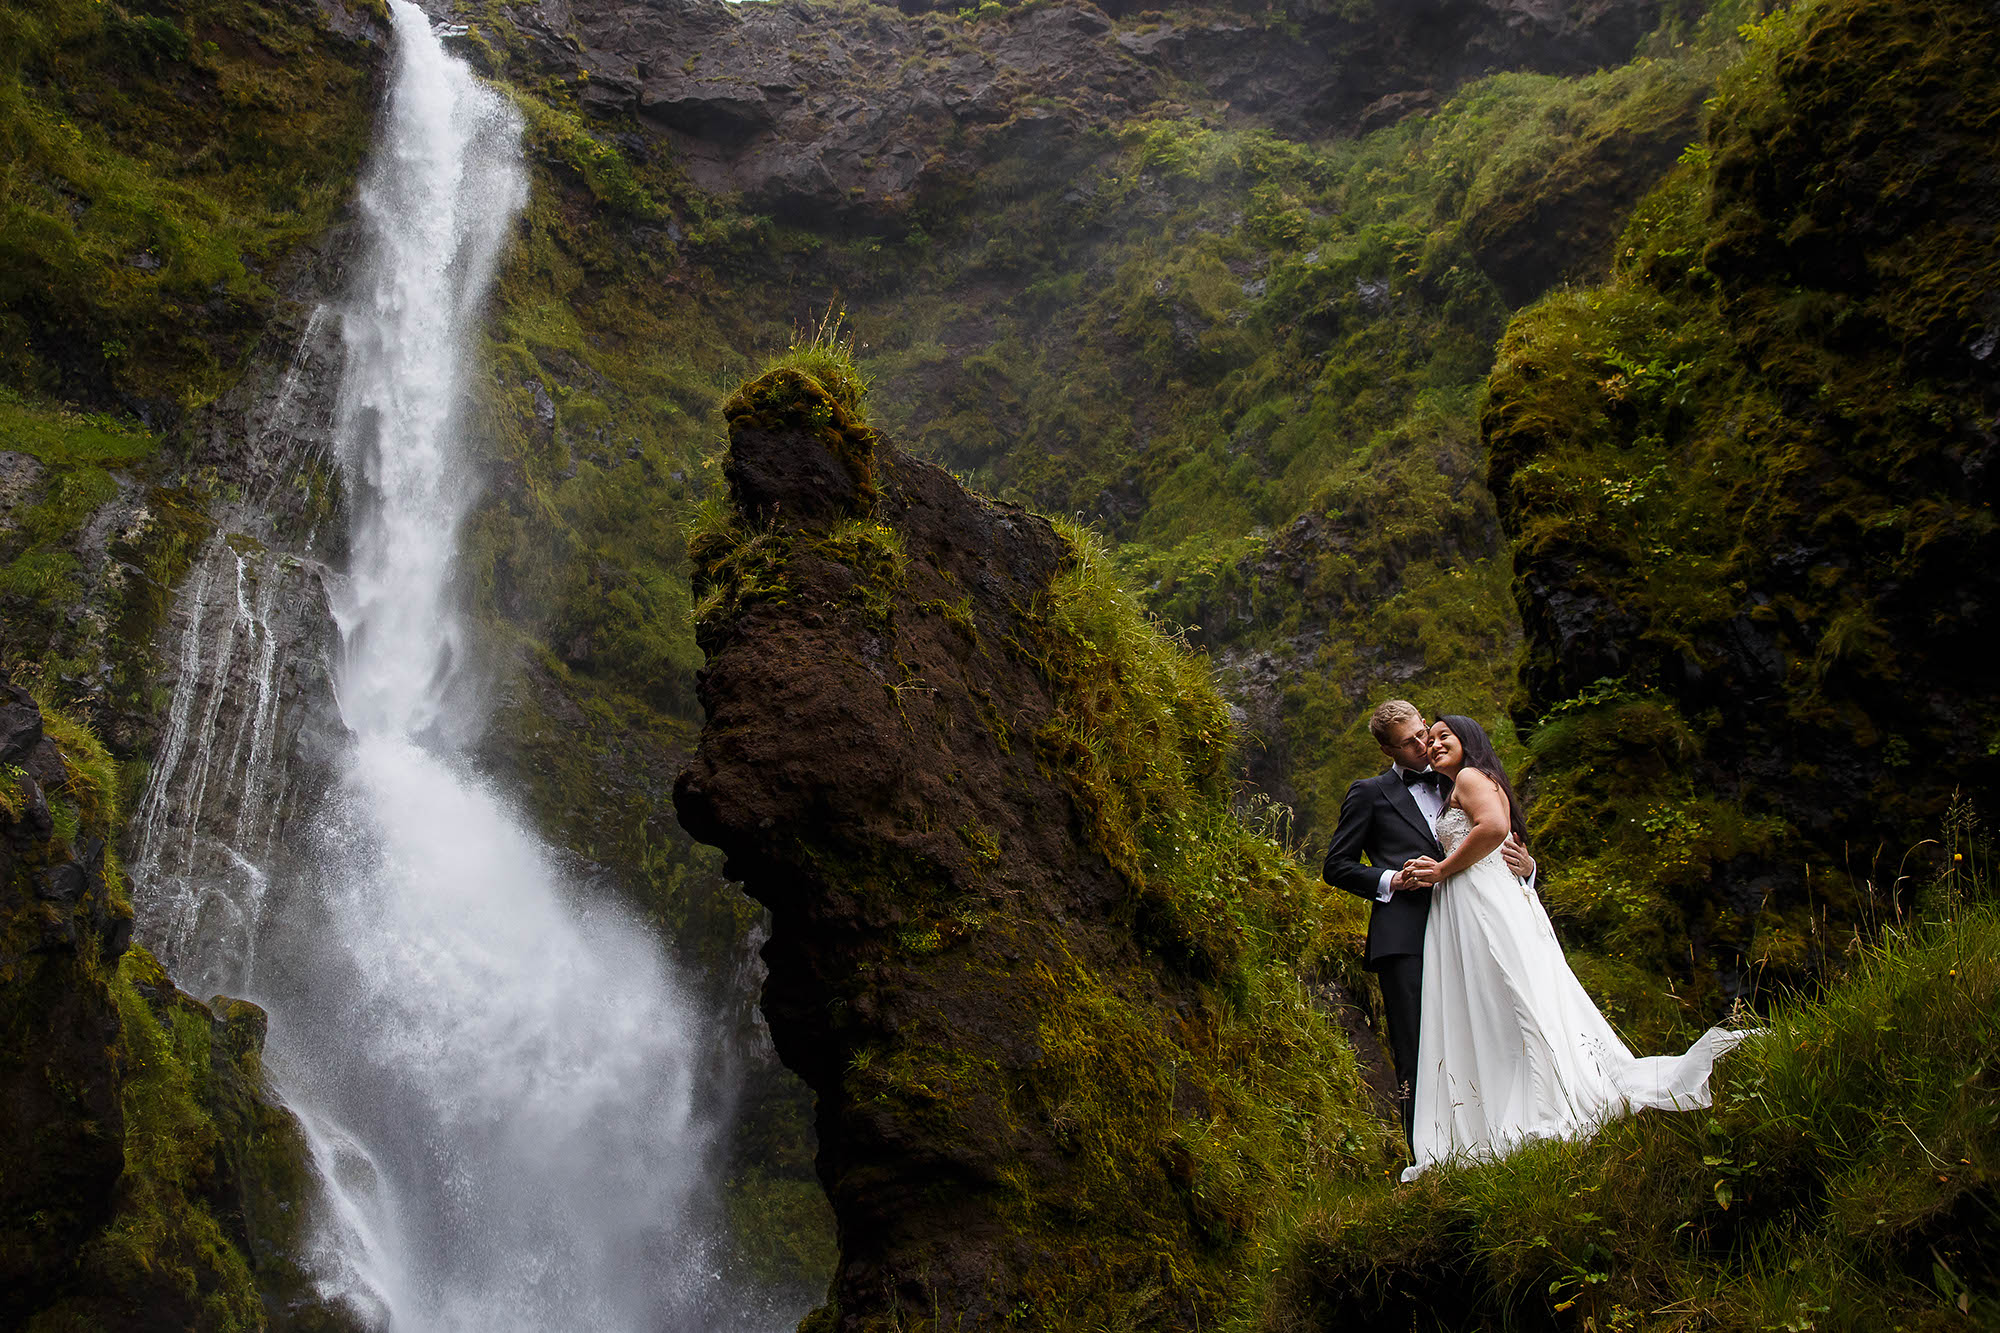 An elopement to the South Region of Iceland for their wedding and stopped at the waterfall Seljalandsfoss in the middle of lush green and rocky landscape with the white falls in the background.